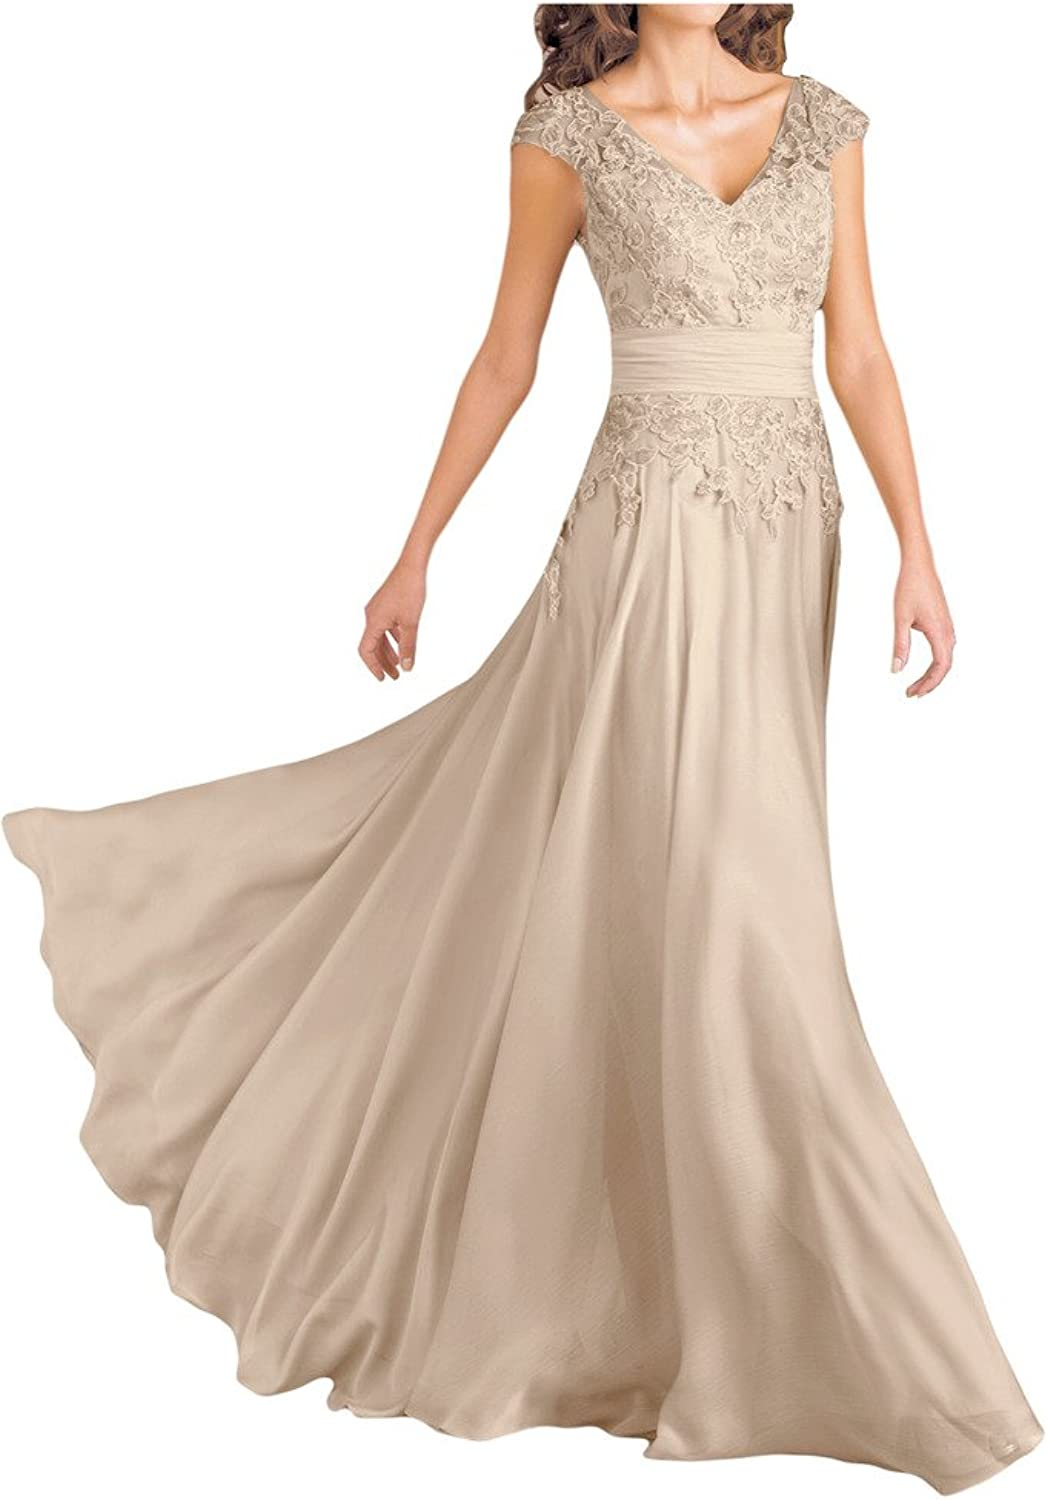 Angel Bride Appliqued VNeck Mother of the Bride Dresses Wedding Party Gowns